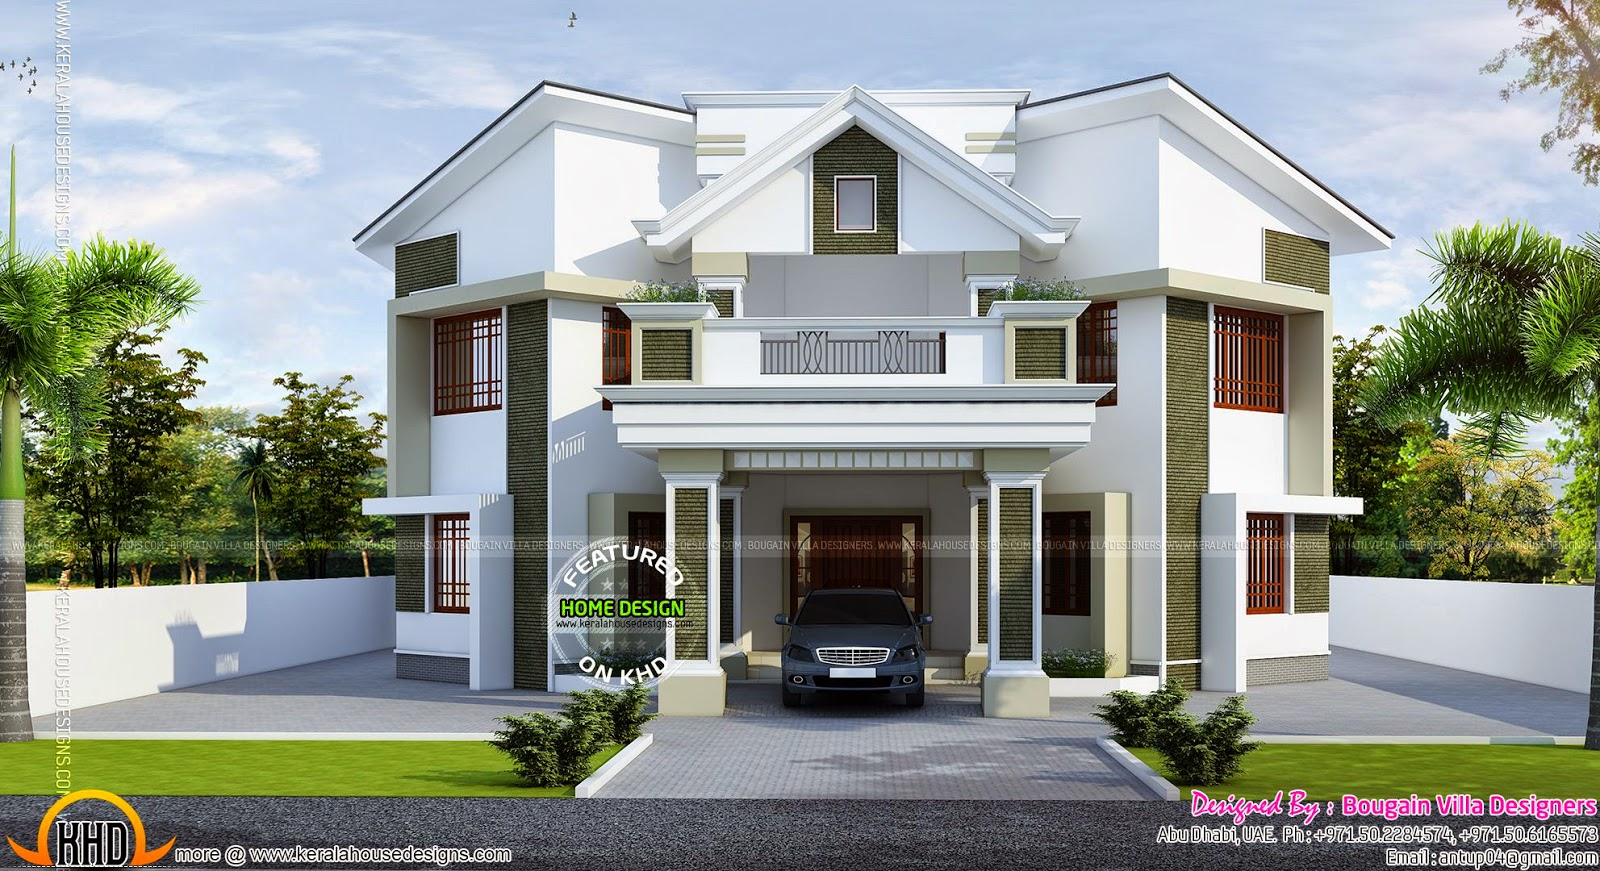 Tamilnadu model house keralahousedesigns for Home models in tamilnadu pictures